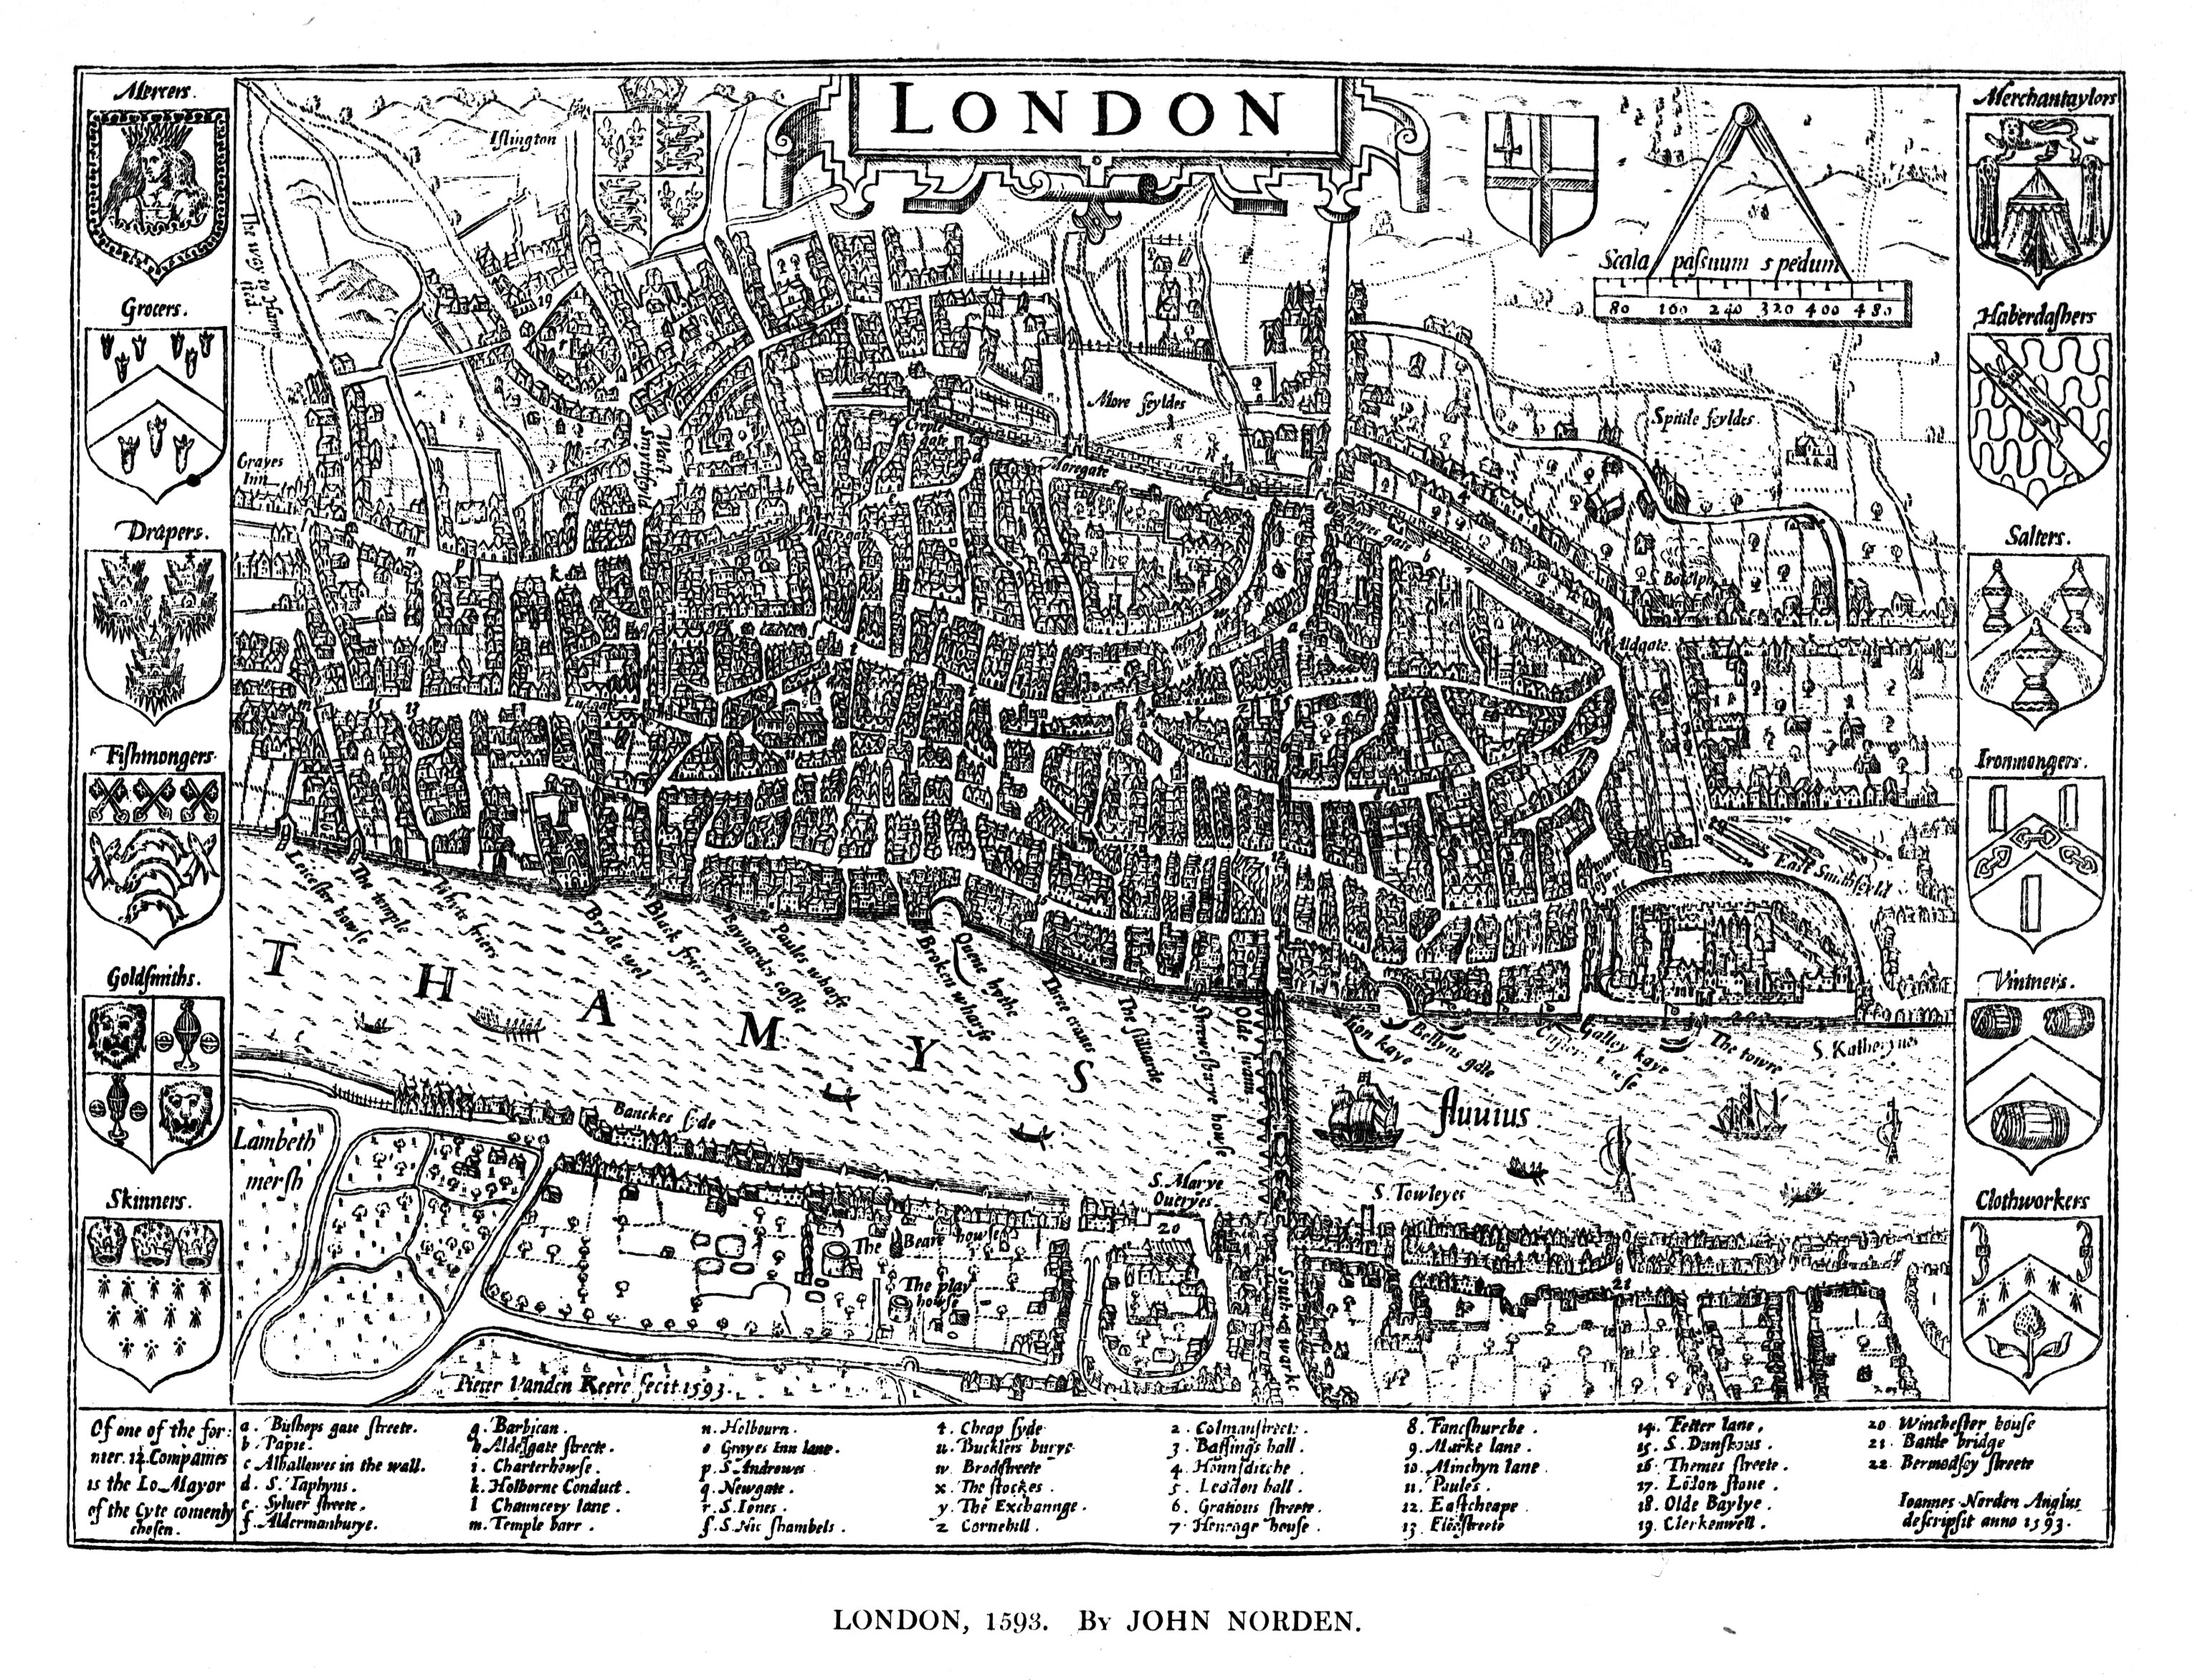 File:John Norden's map of London 1593 Large version.jpg